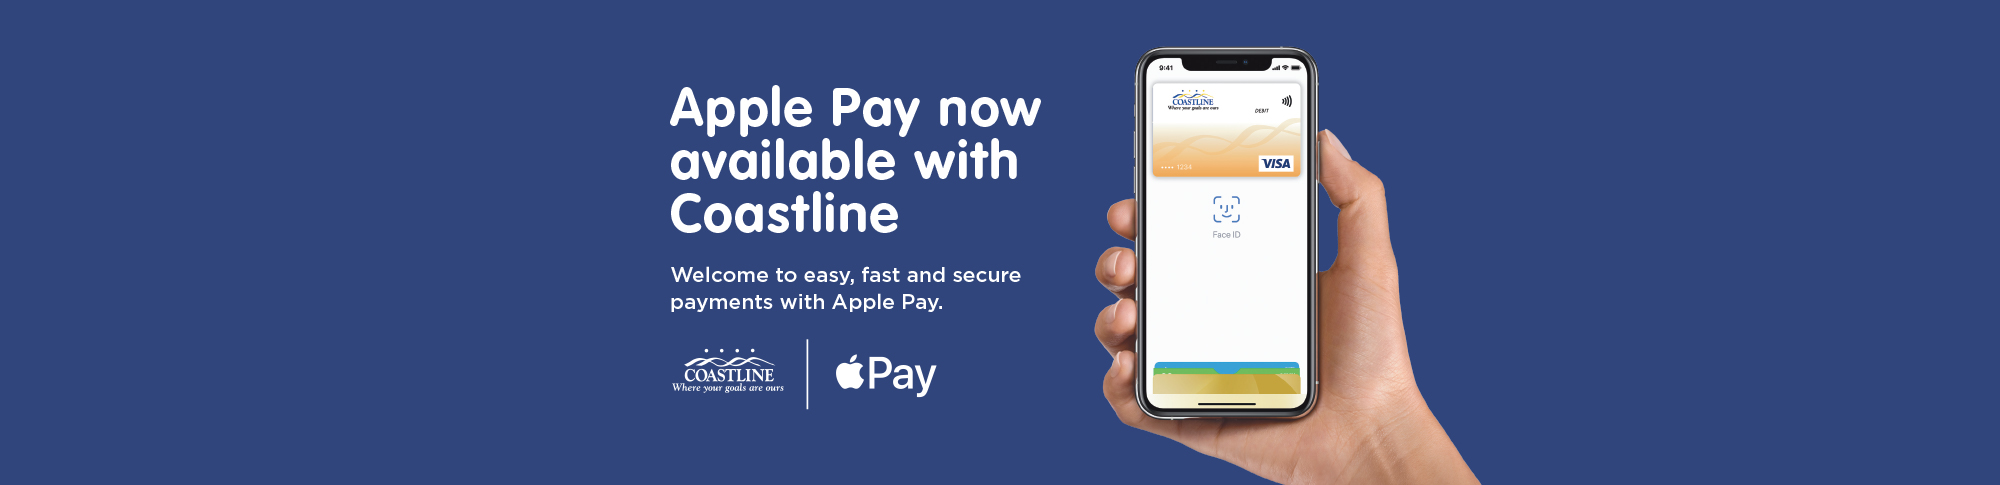 Apple Pay now available with Coastline